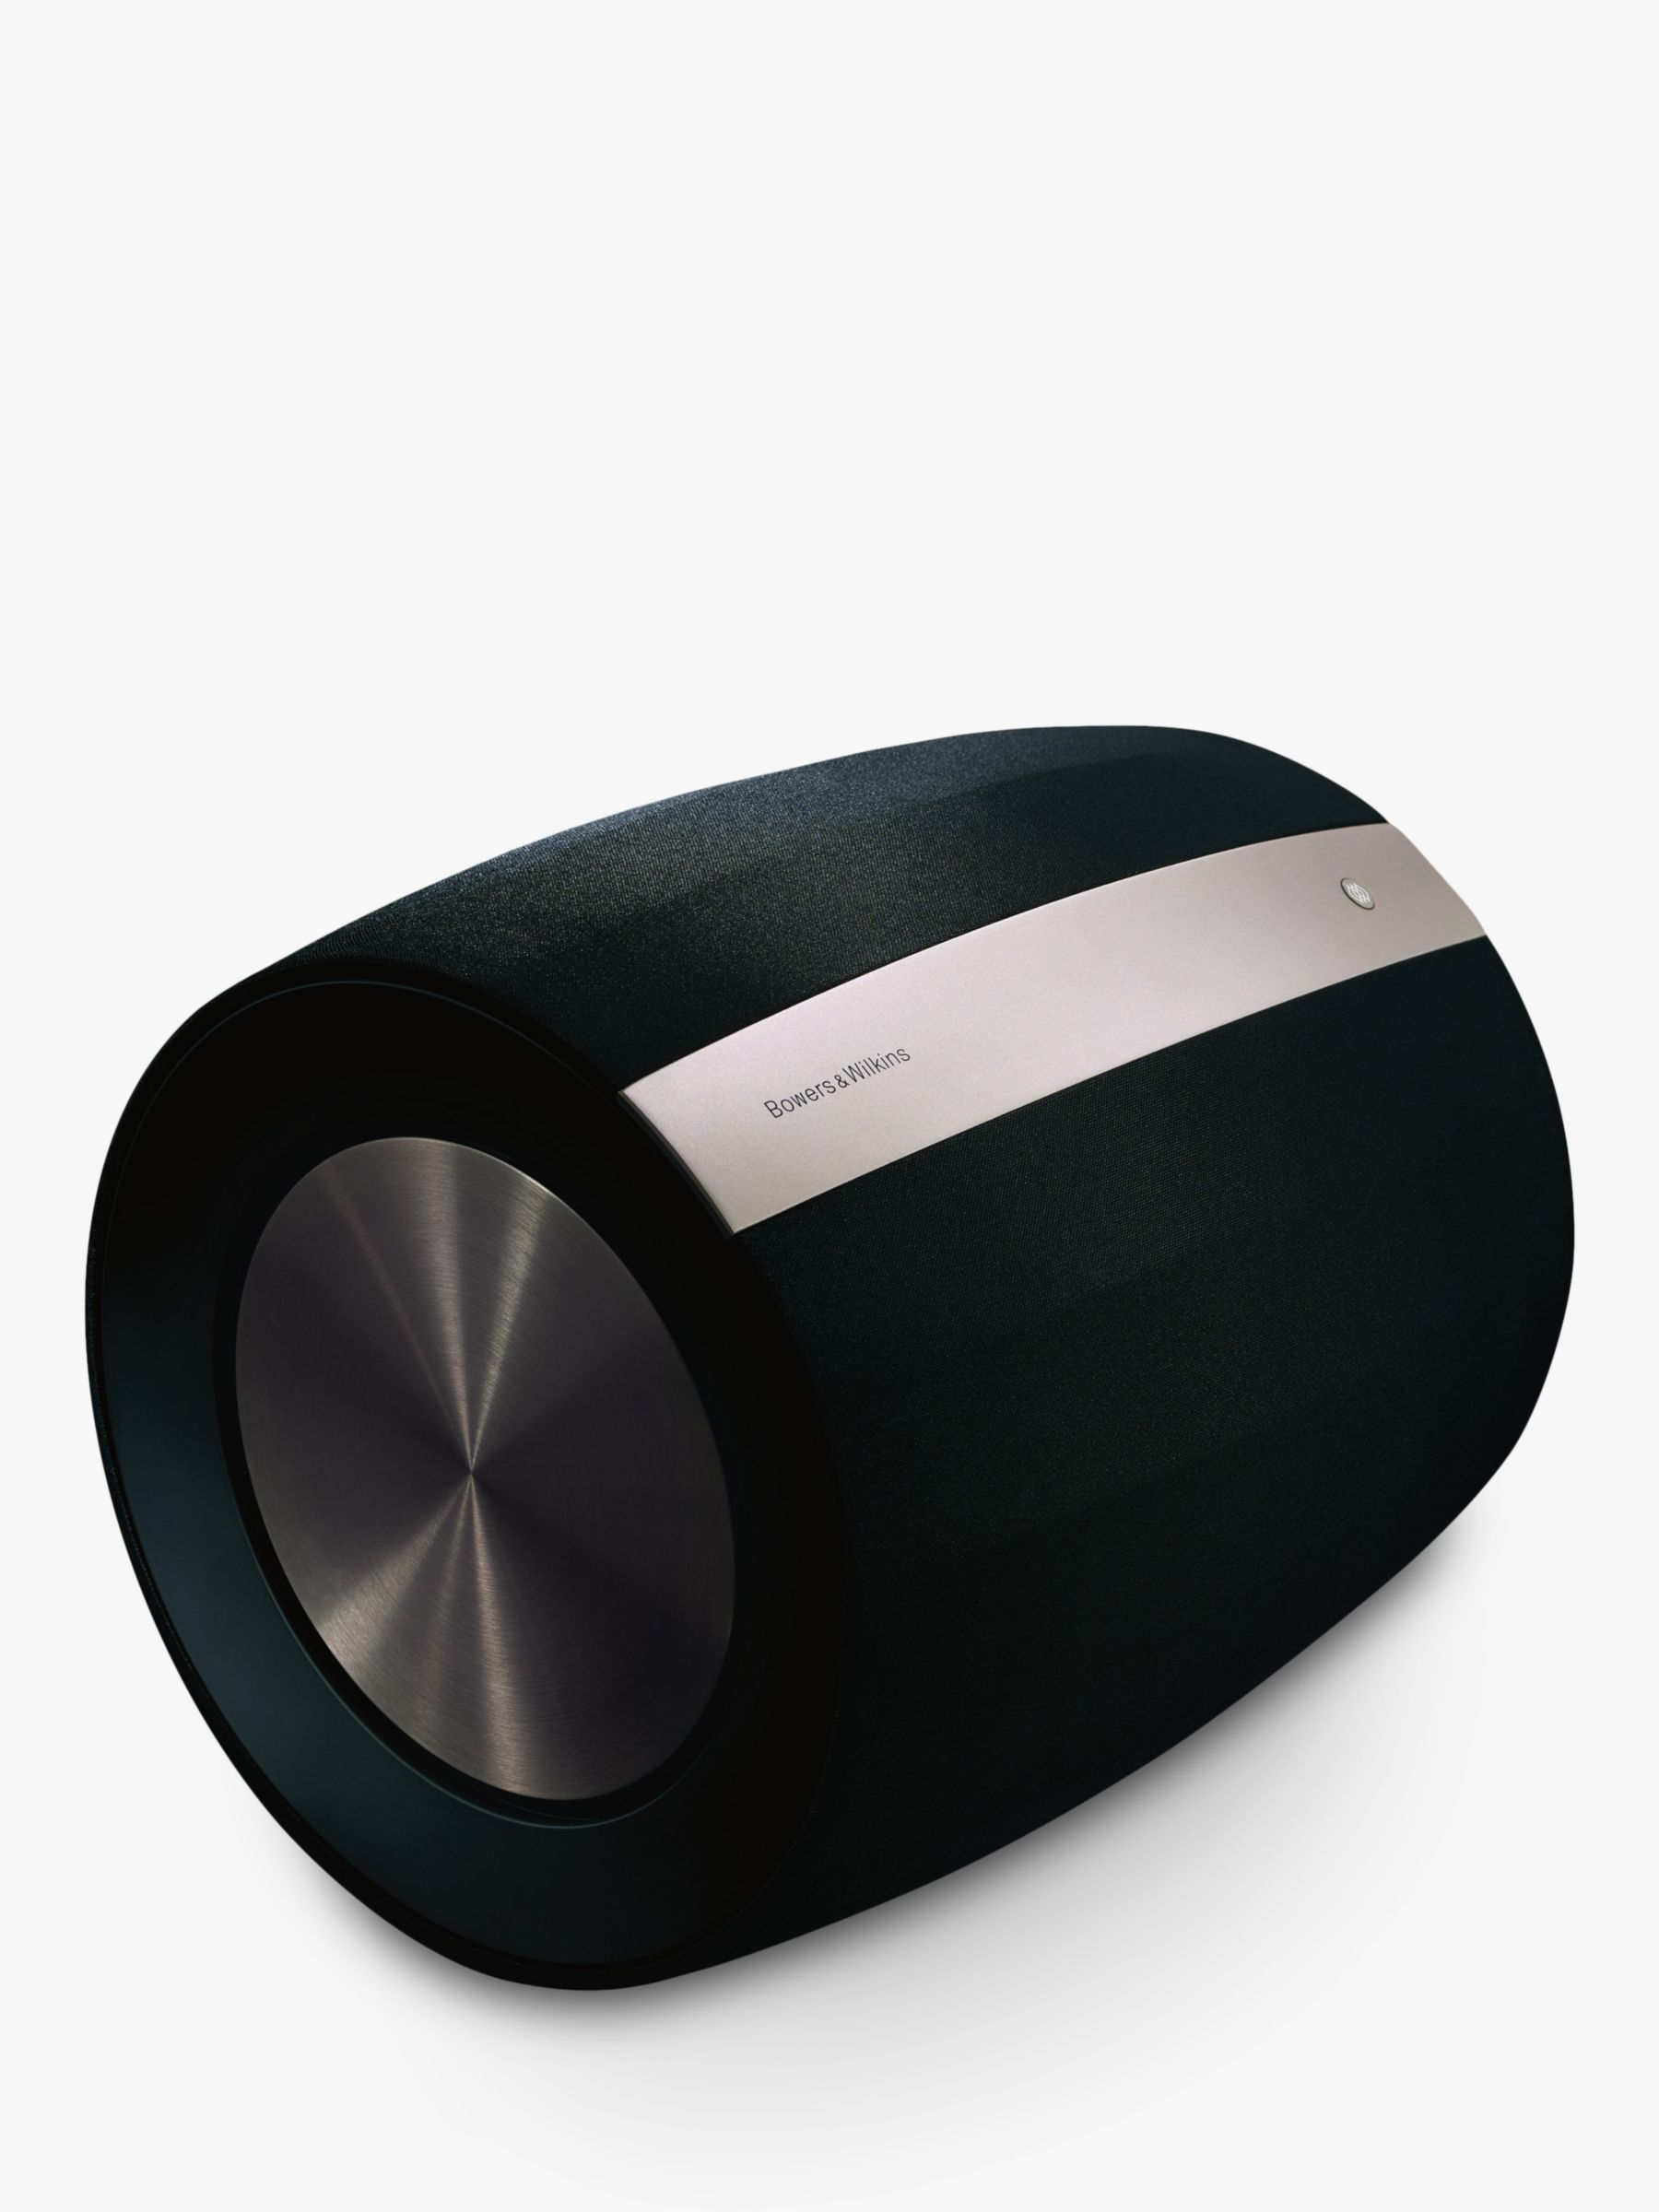 Bowers & Wilkins Bowers & Wilkins Formation Bass Wireless Subwoofer